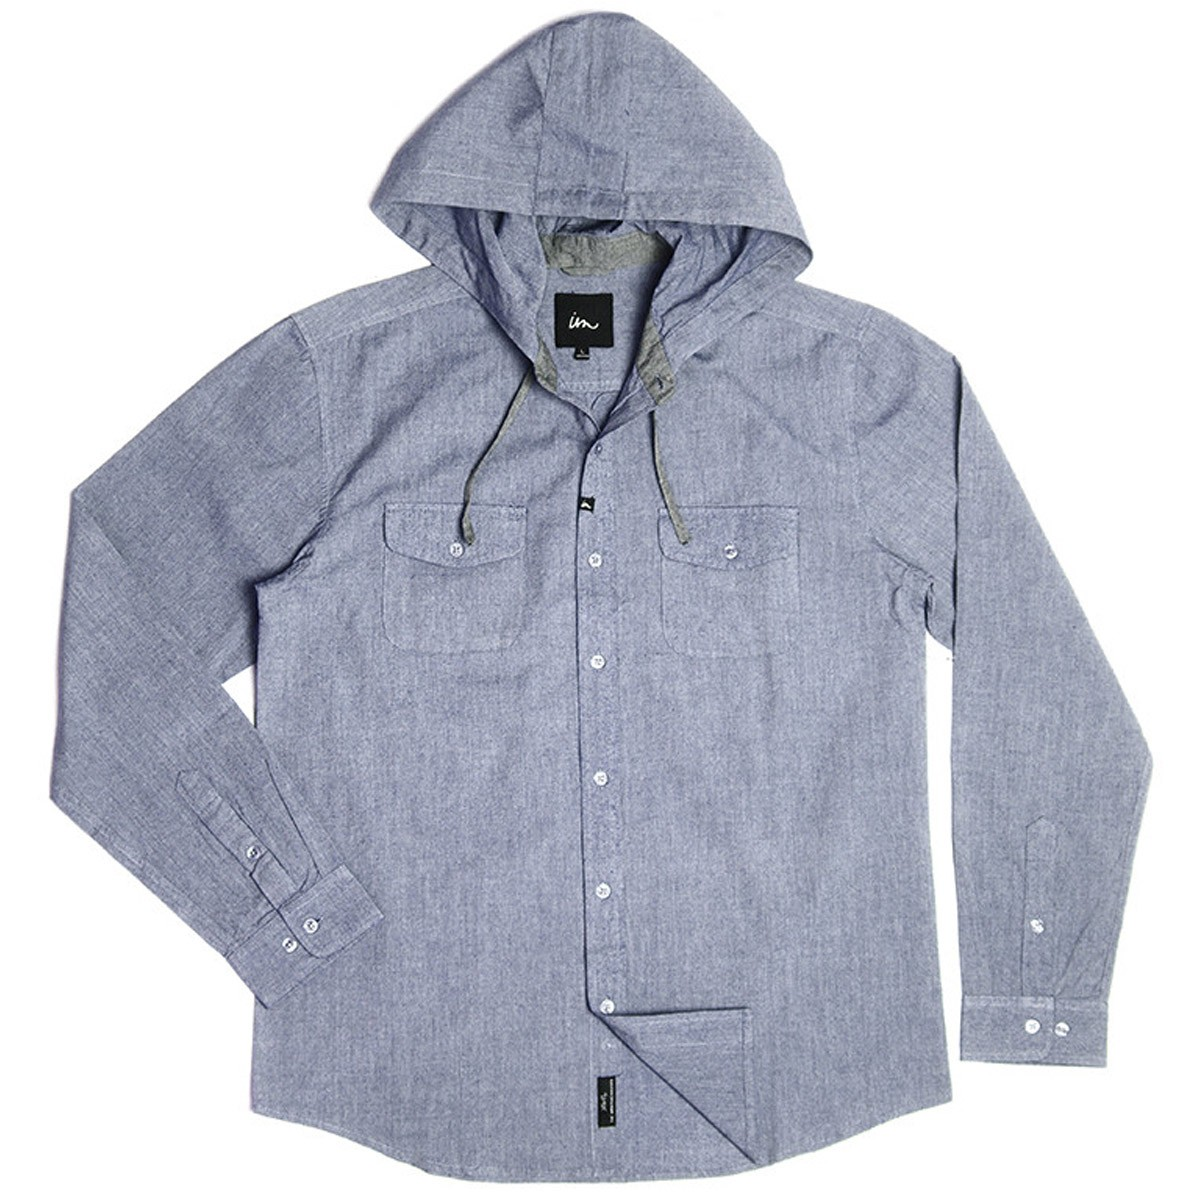 Imperial Motion Clyde Hooded Long Sleeve Chambray Shirt - Indigo